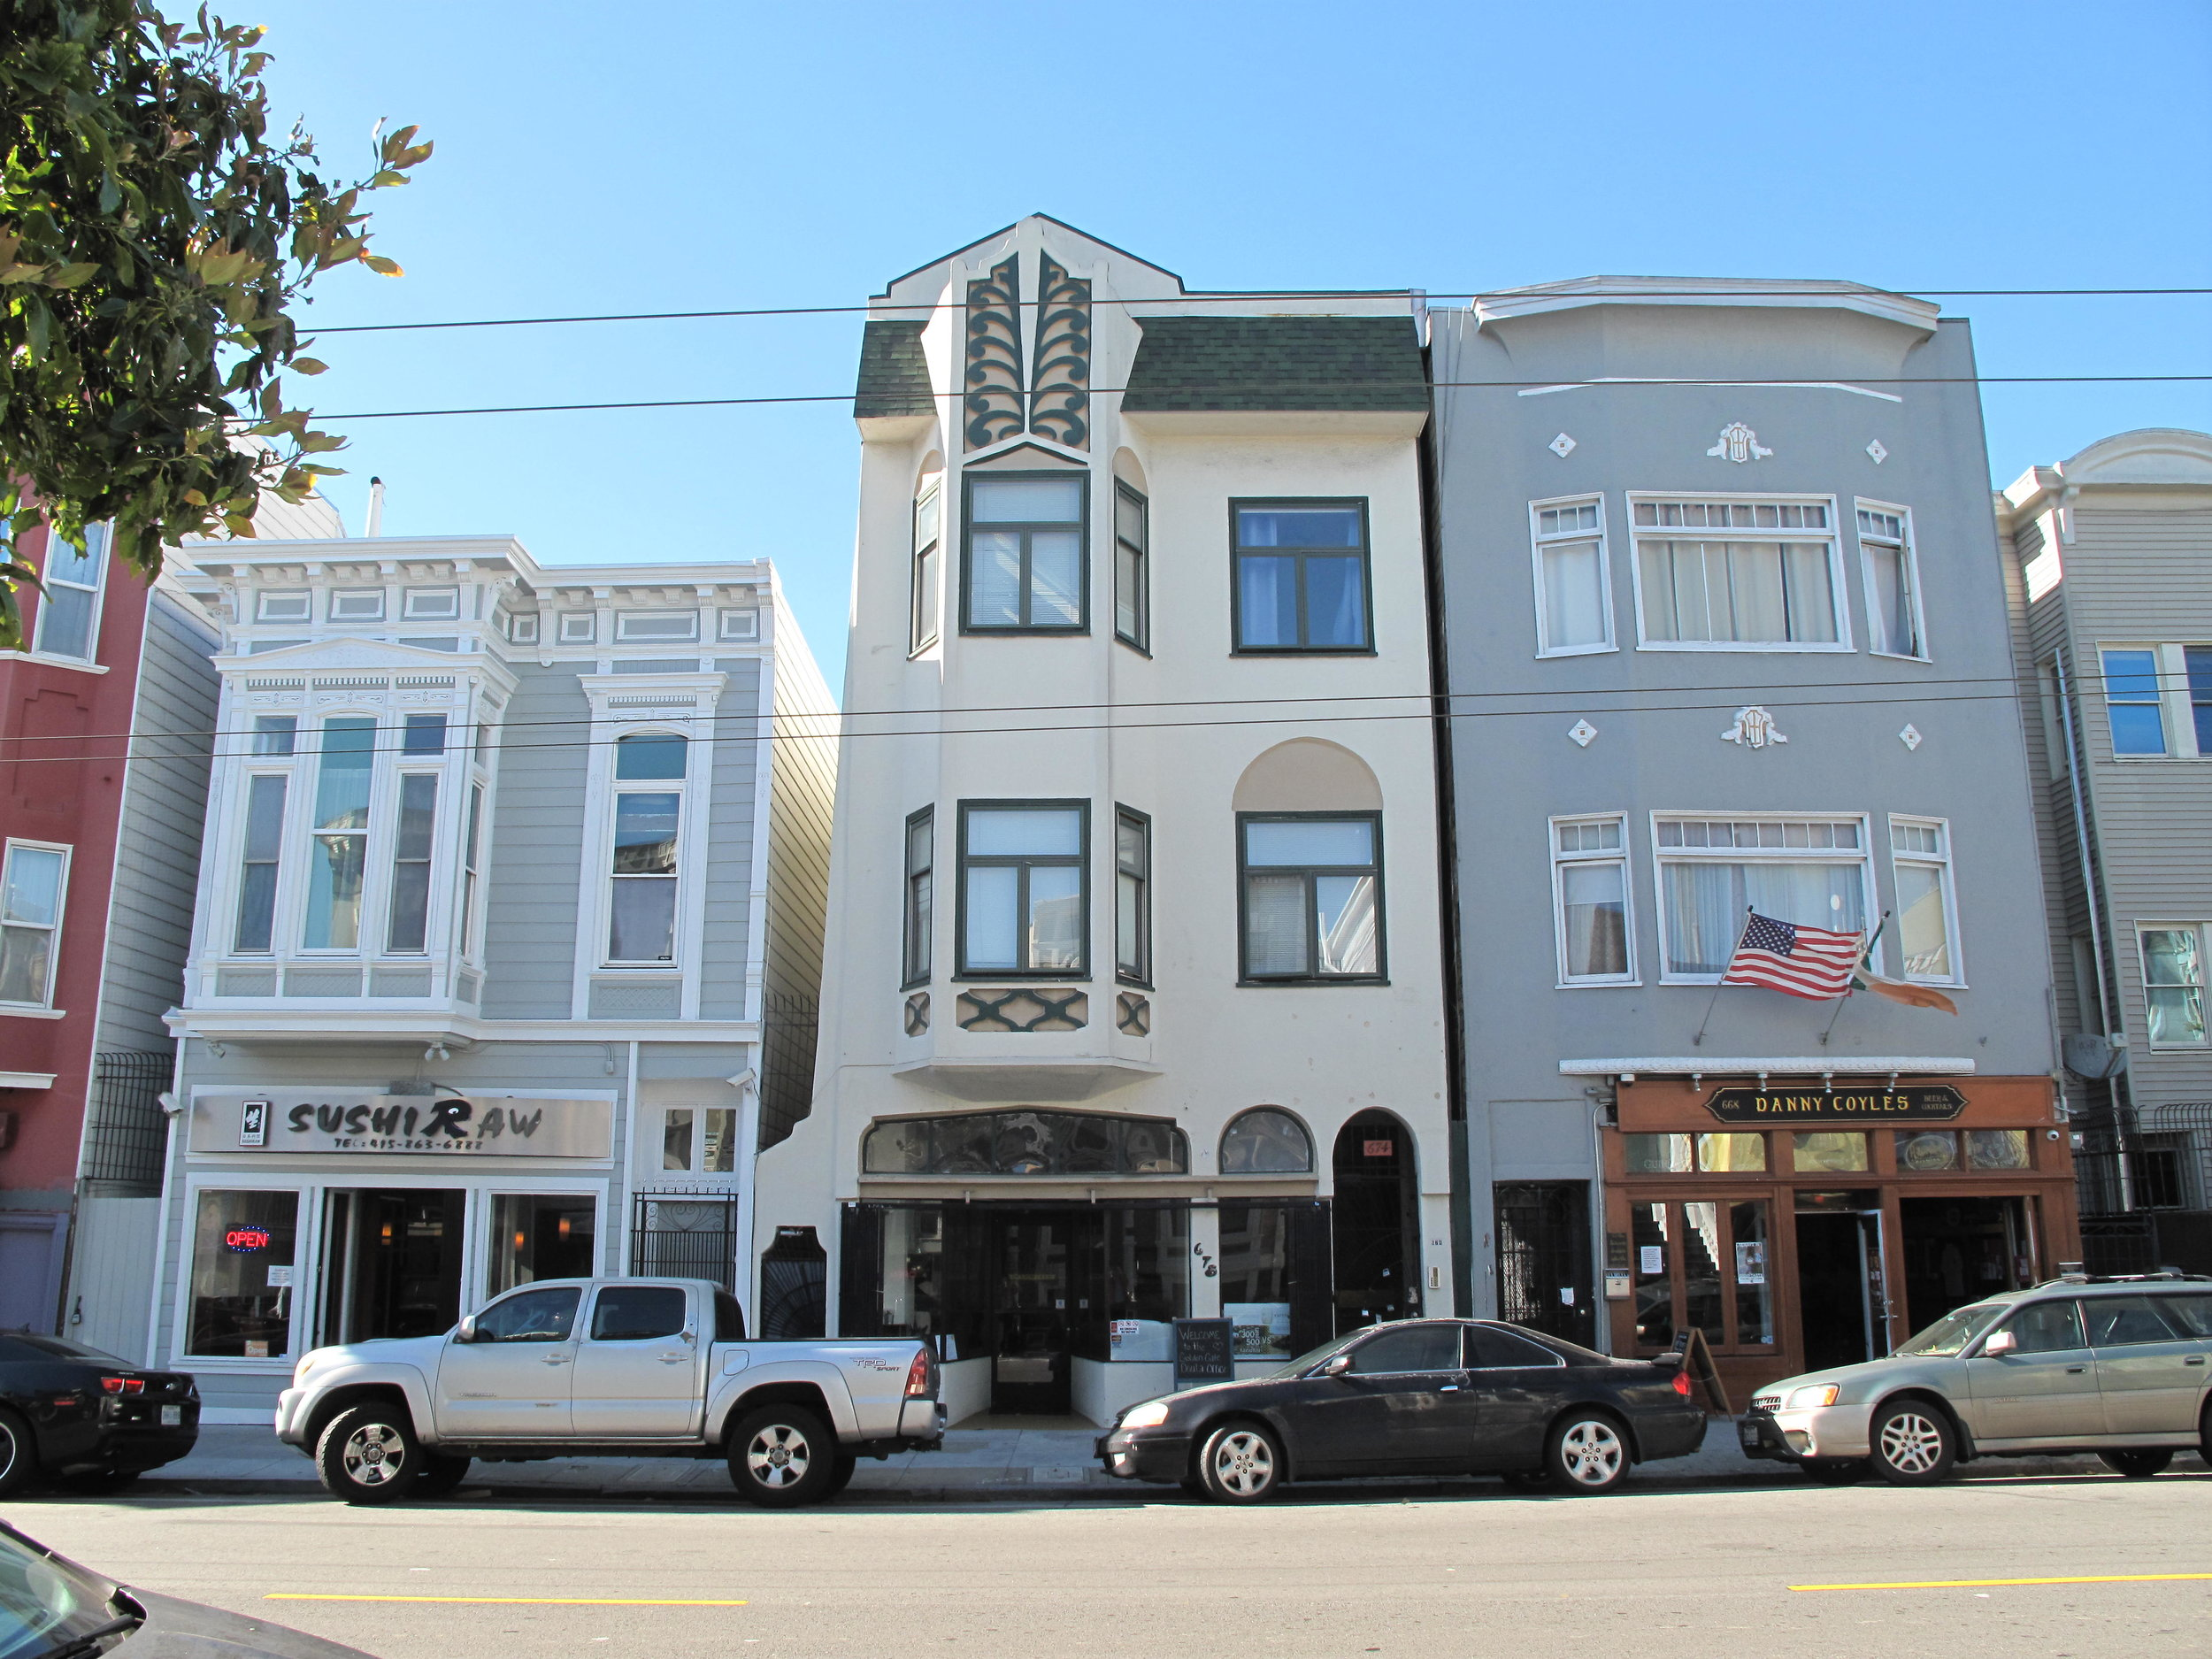 674-678Haight Street - 674-678 Haight Street, San Francisco, CA 94117Listed at $3,150,0005,655 Square Feet